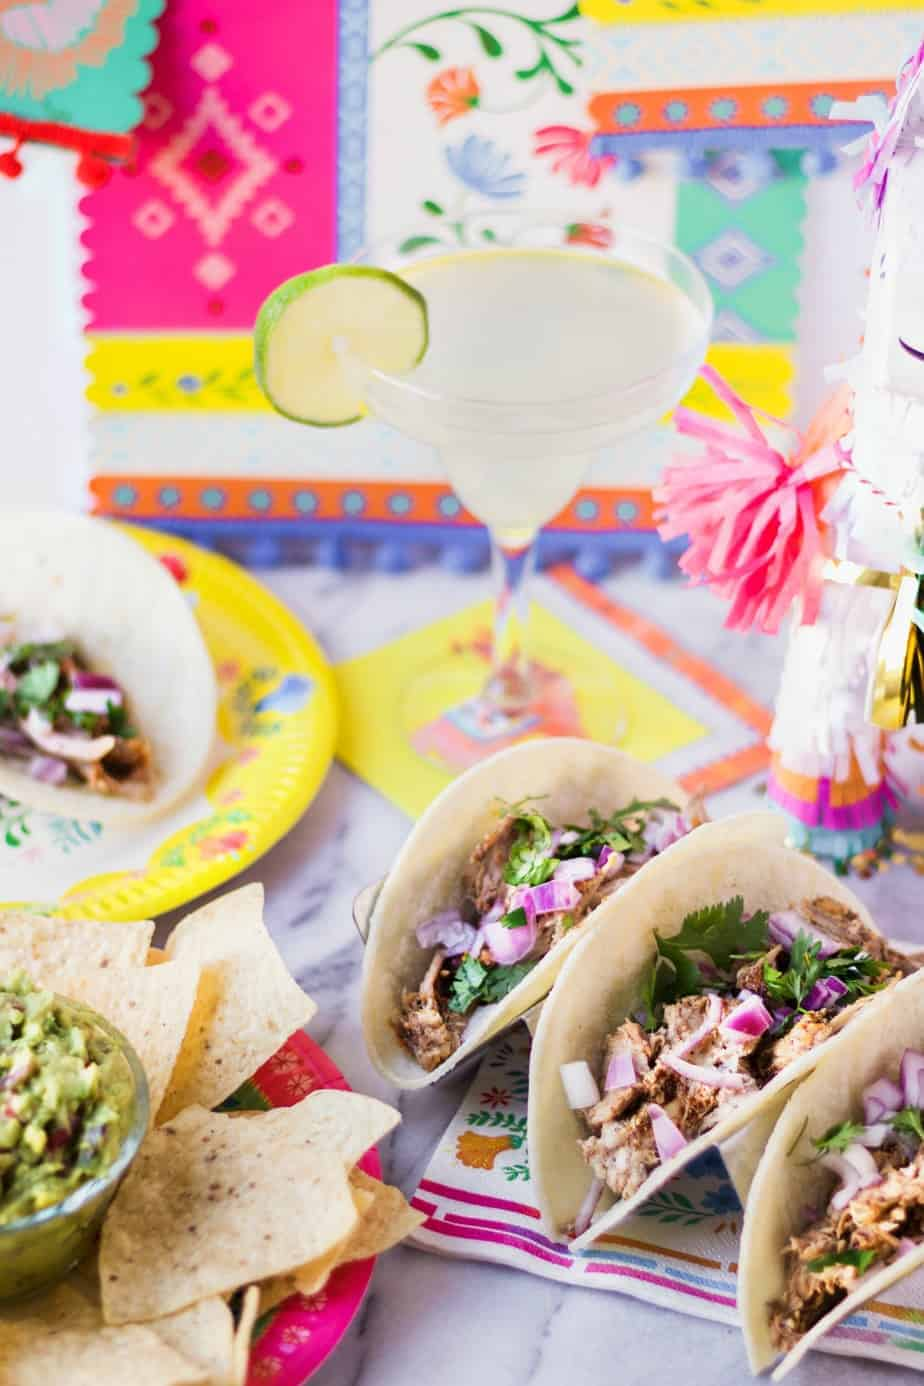 tacos margaritas and guacamole for a taco bar party